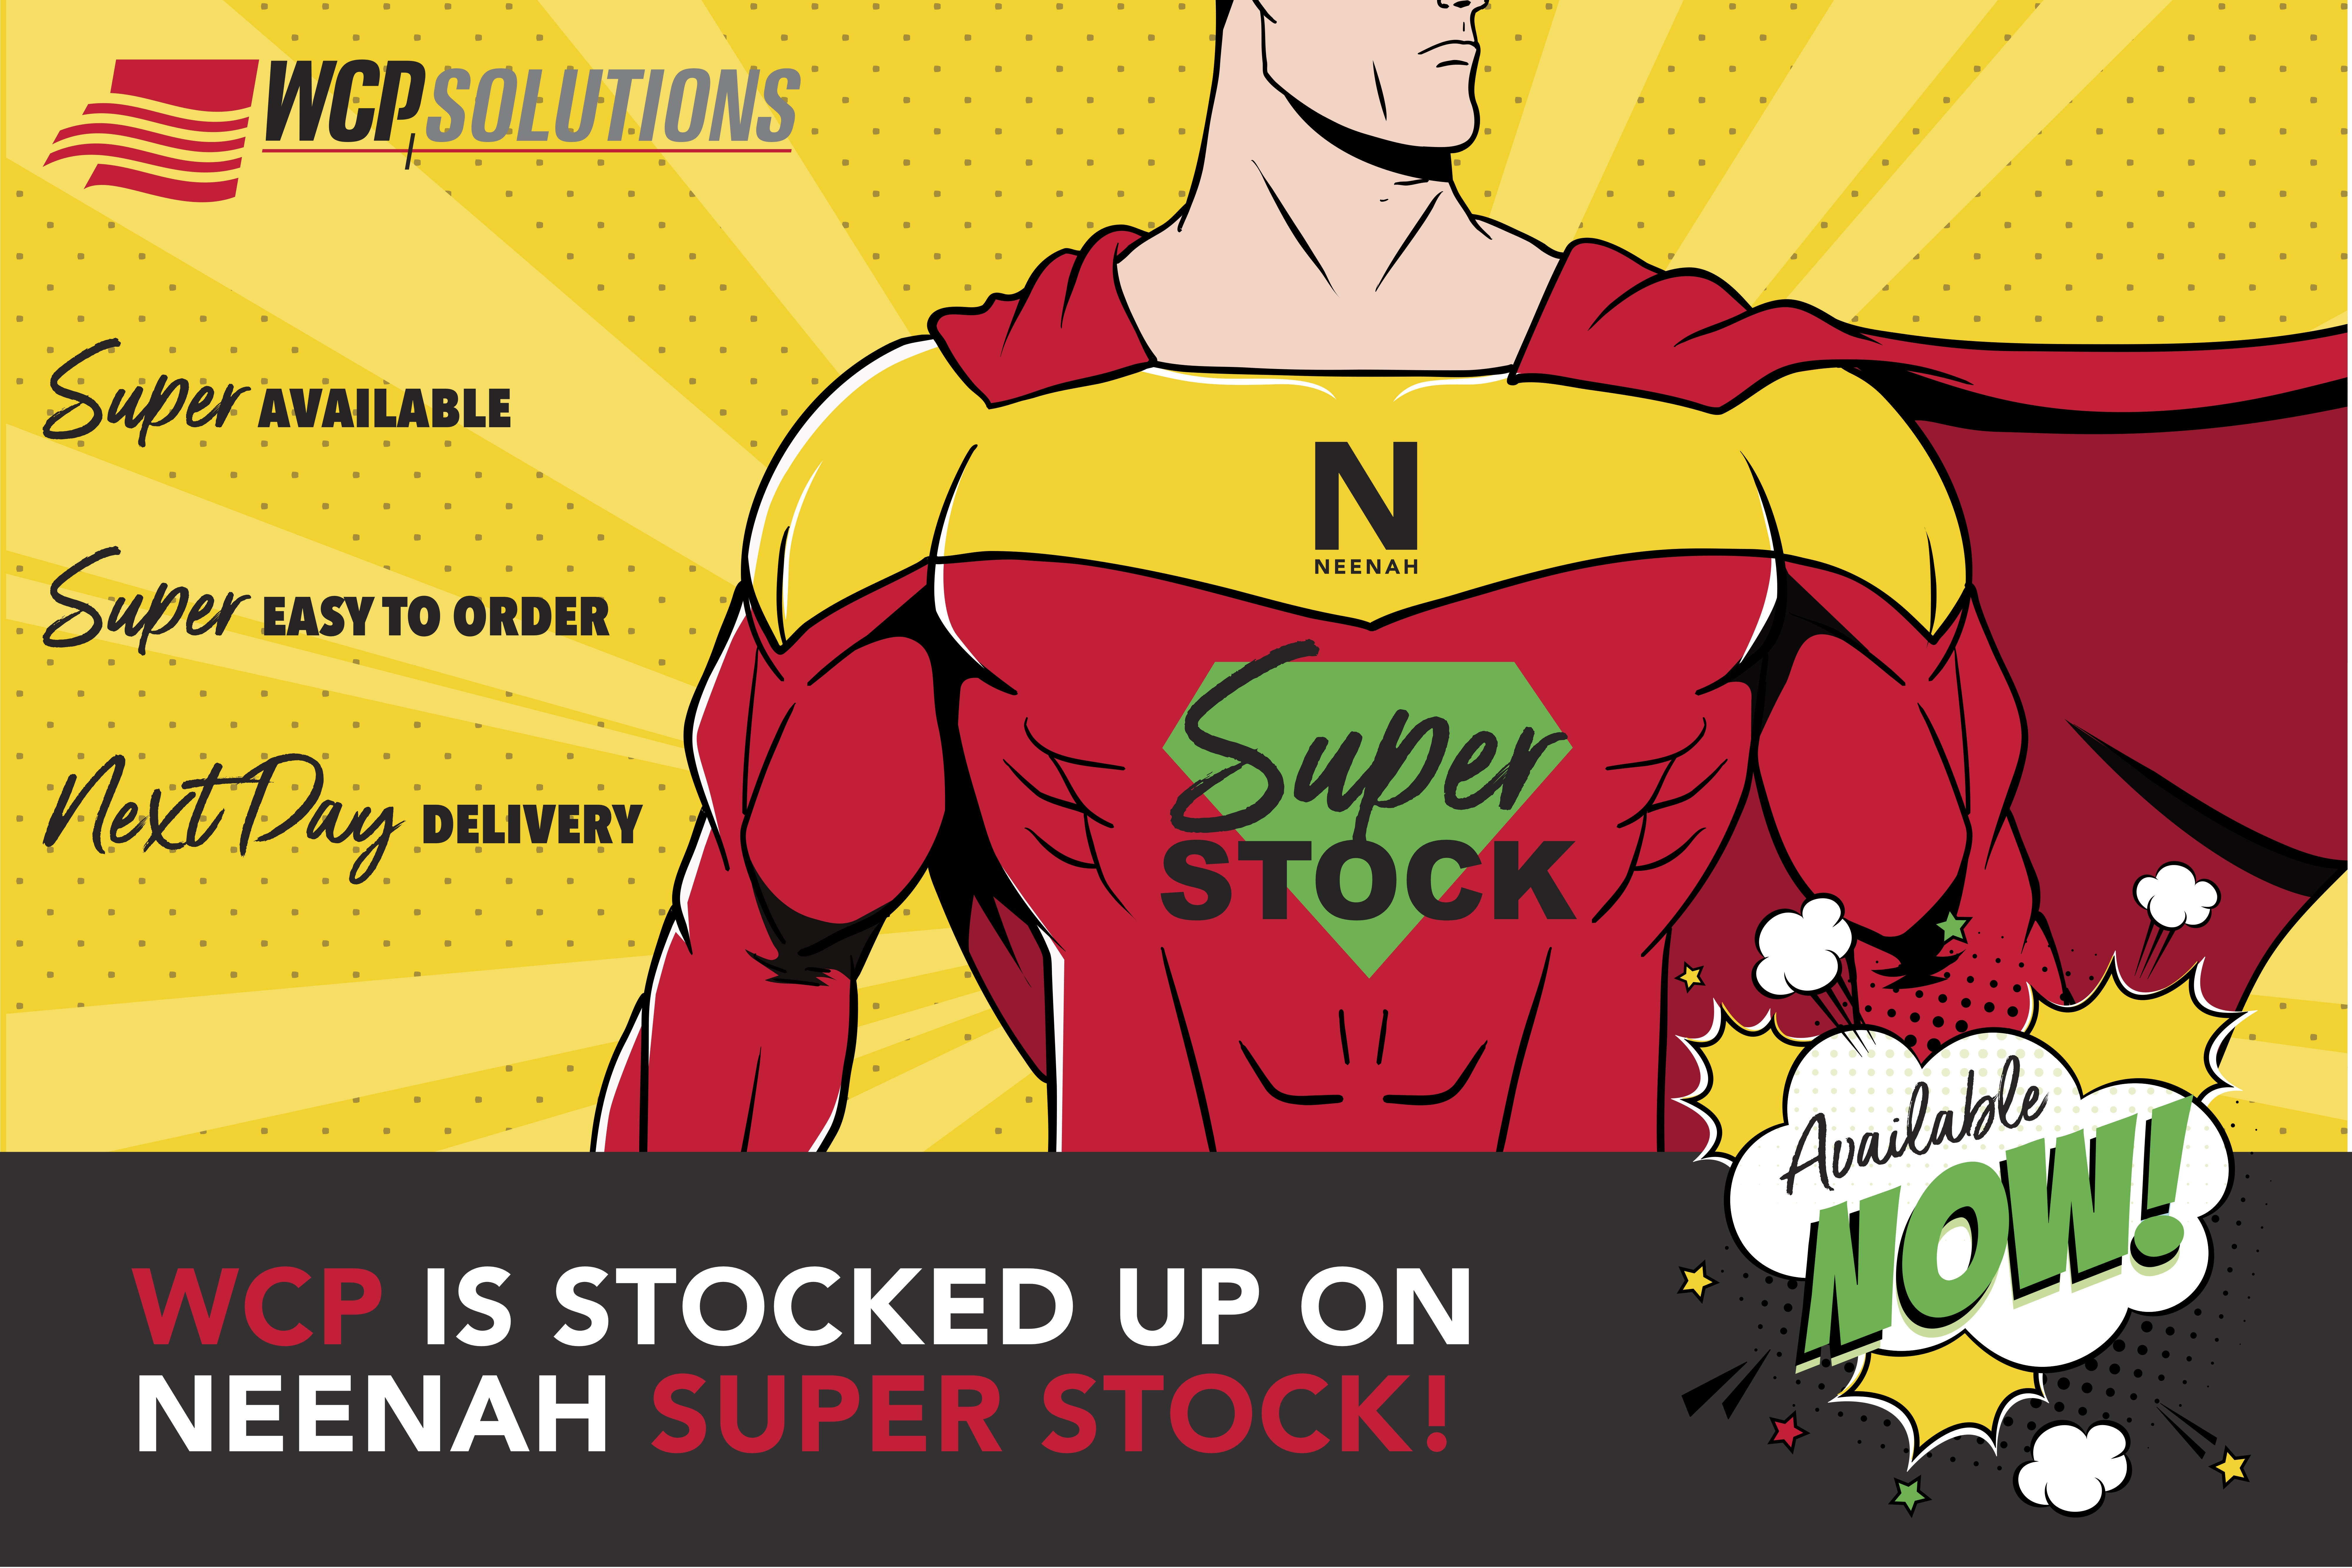 Neenah Paper Super Stock Program with WCP Solutions